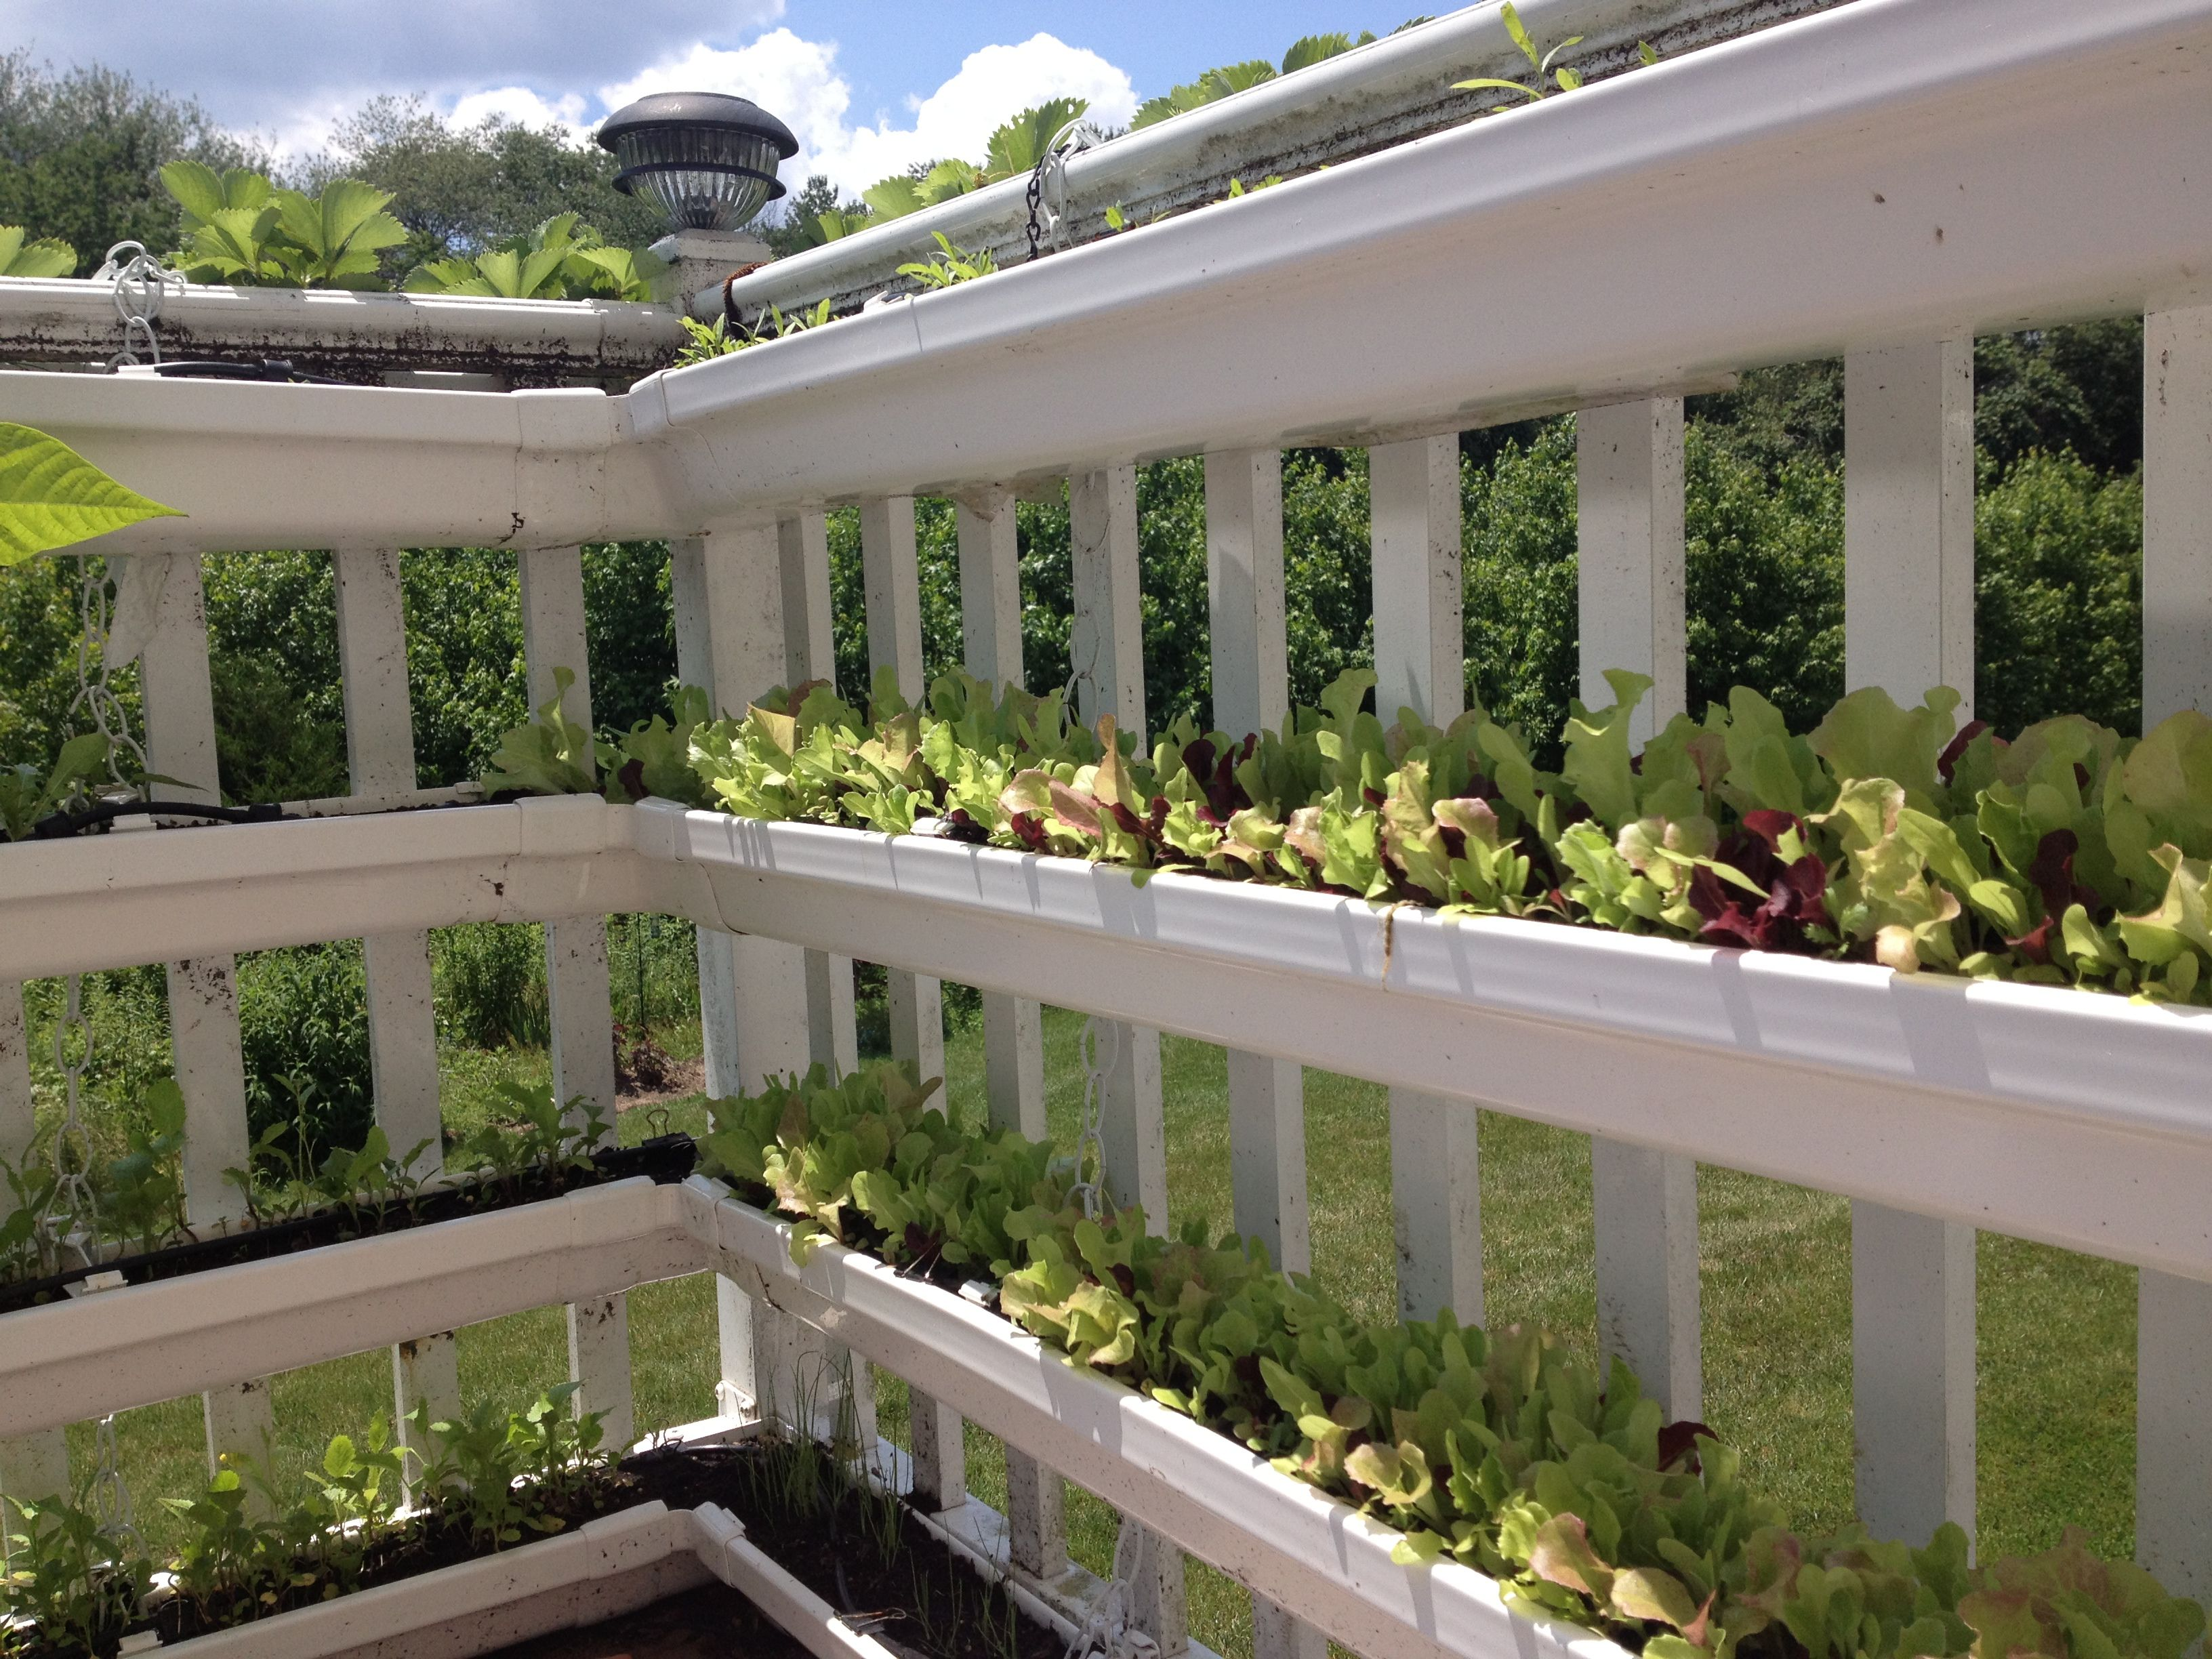 another view of my gutter balcony garden w auto drip irrigation